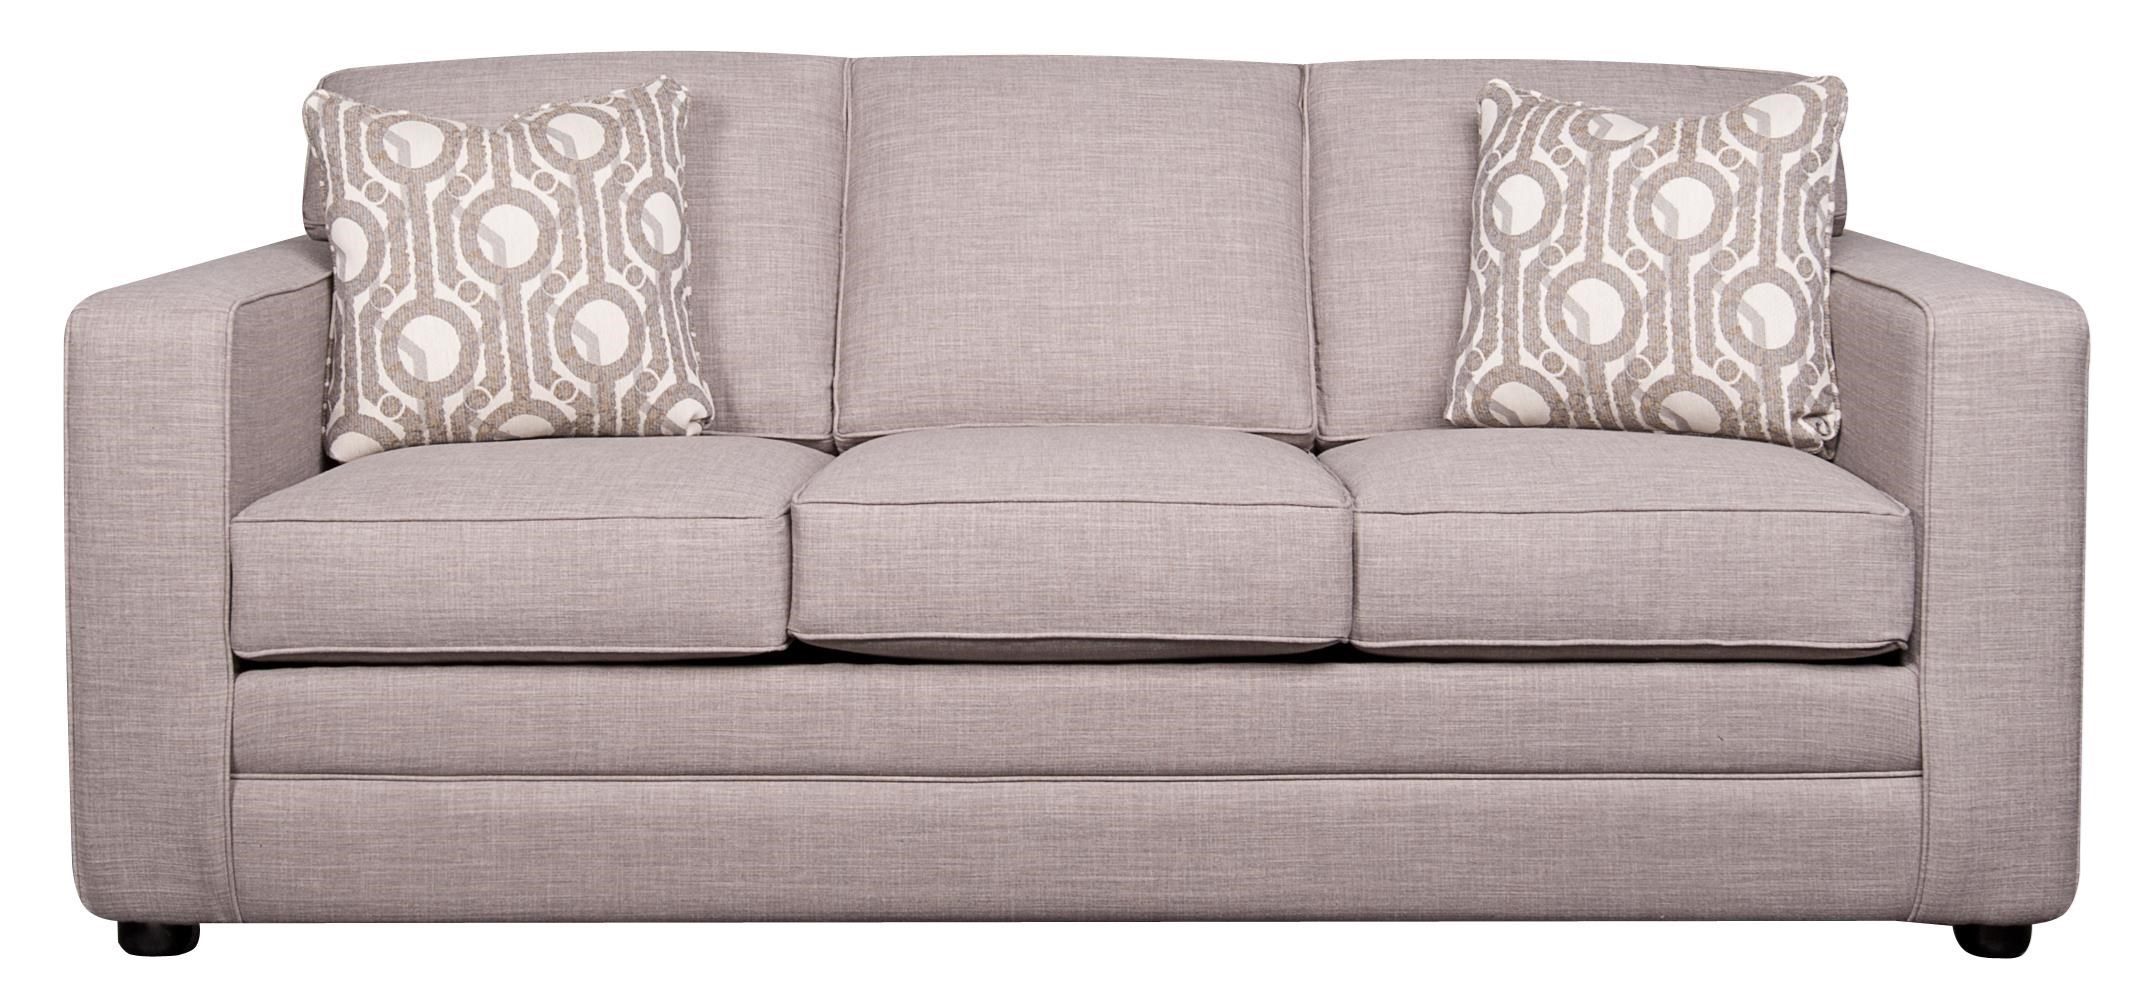 Sofa Queen Vera Queen Sleeper Sofa With Memory Foam By Klaussner At Morris Home